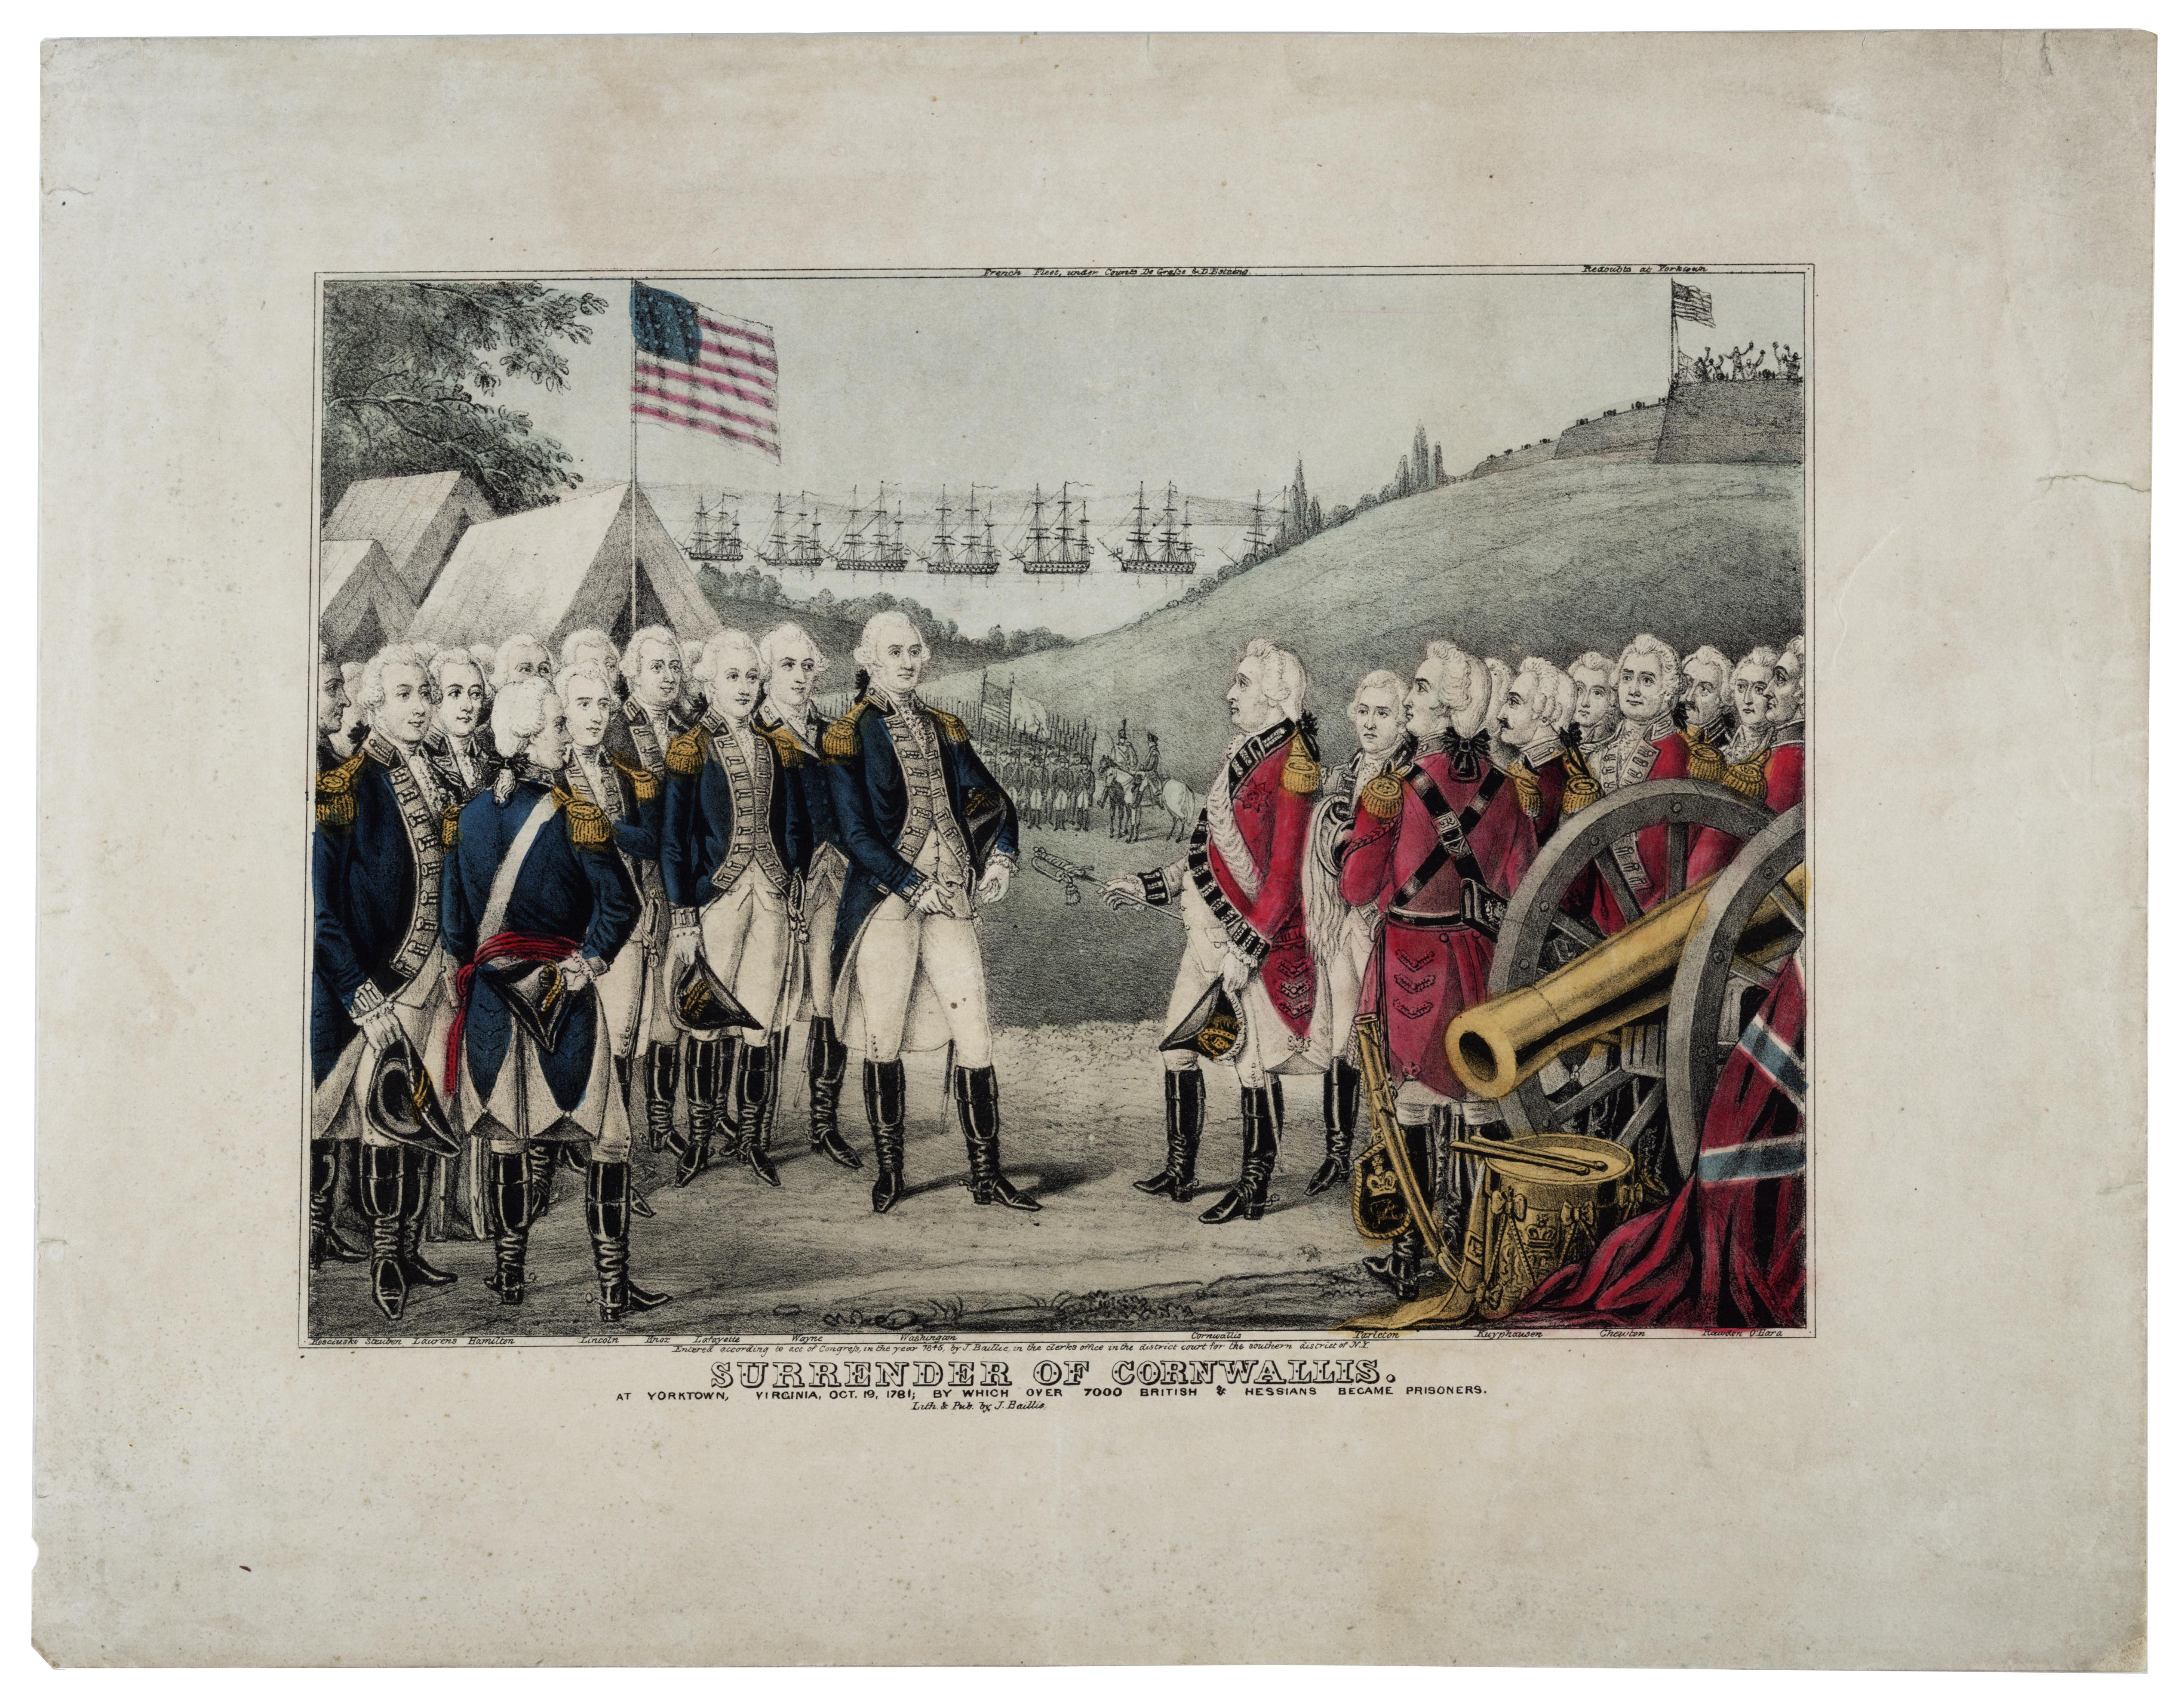 Surrender of Cornwallis, print by James S. Baillie, 1845 (Gilder Lehrman Col